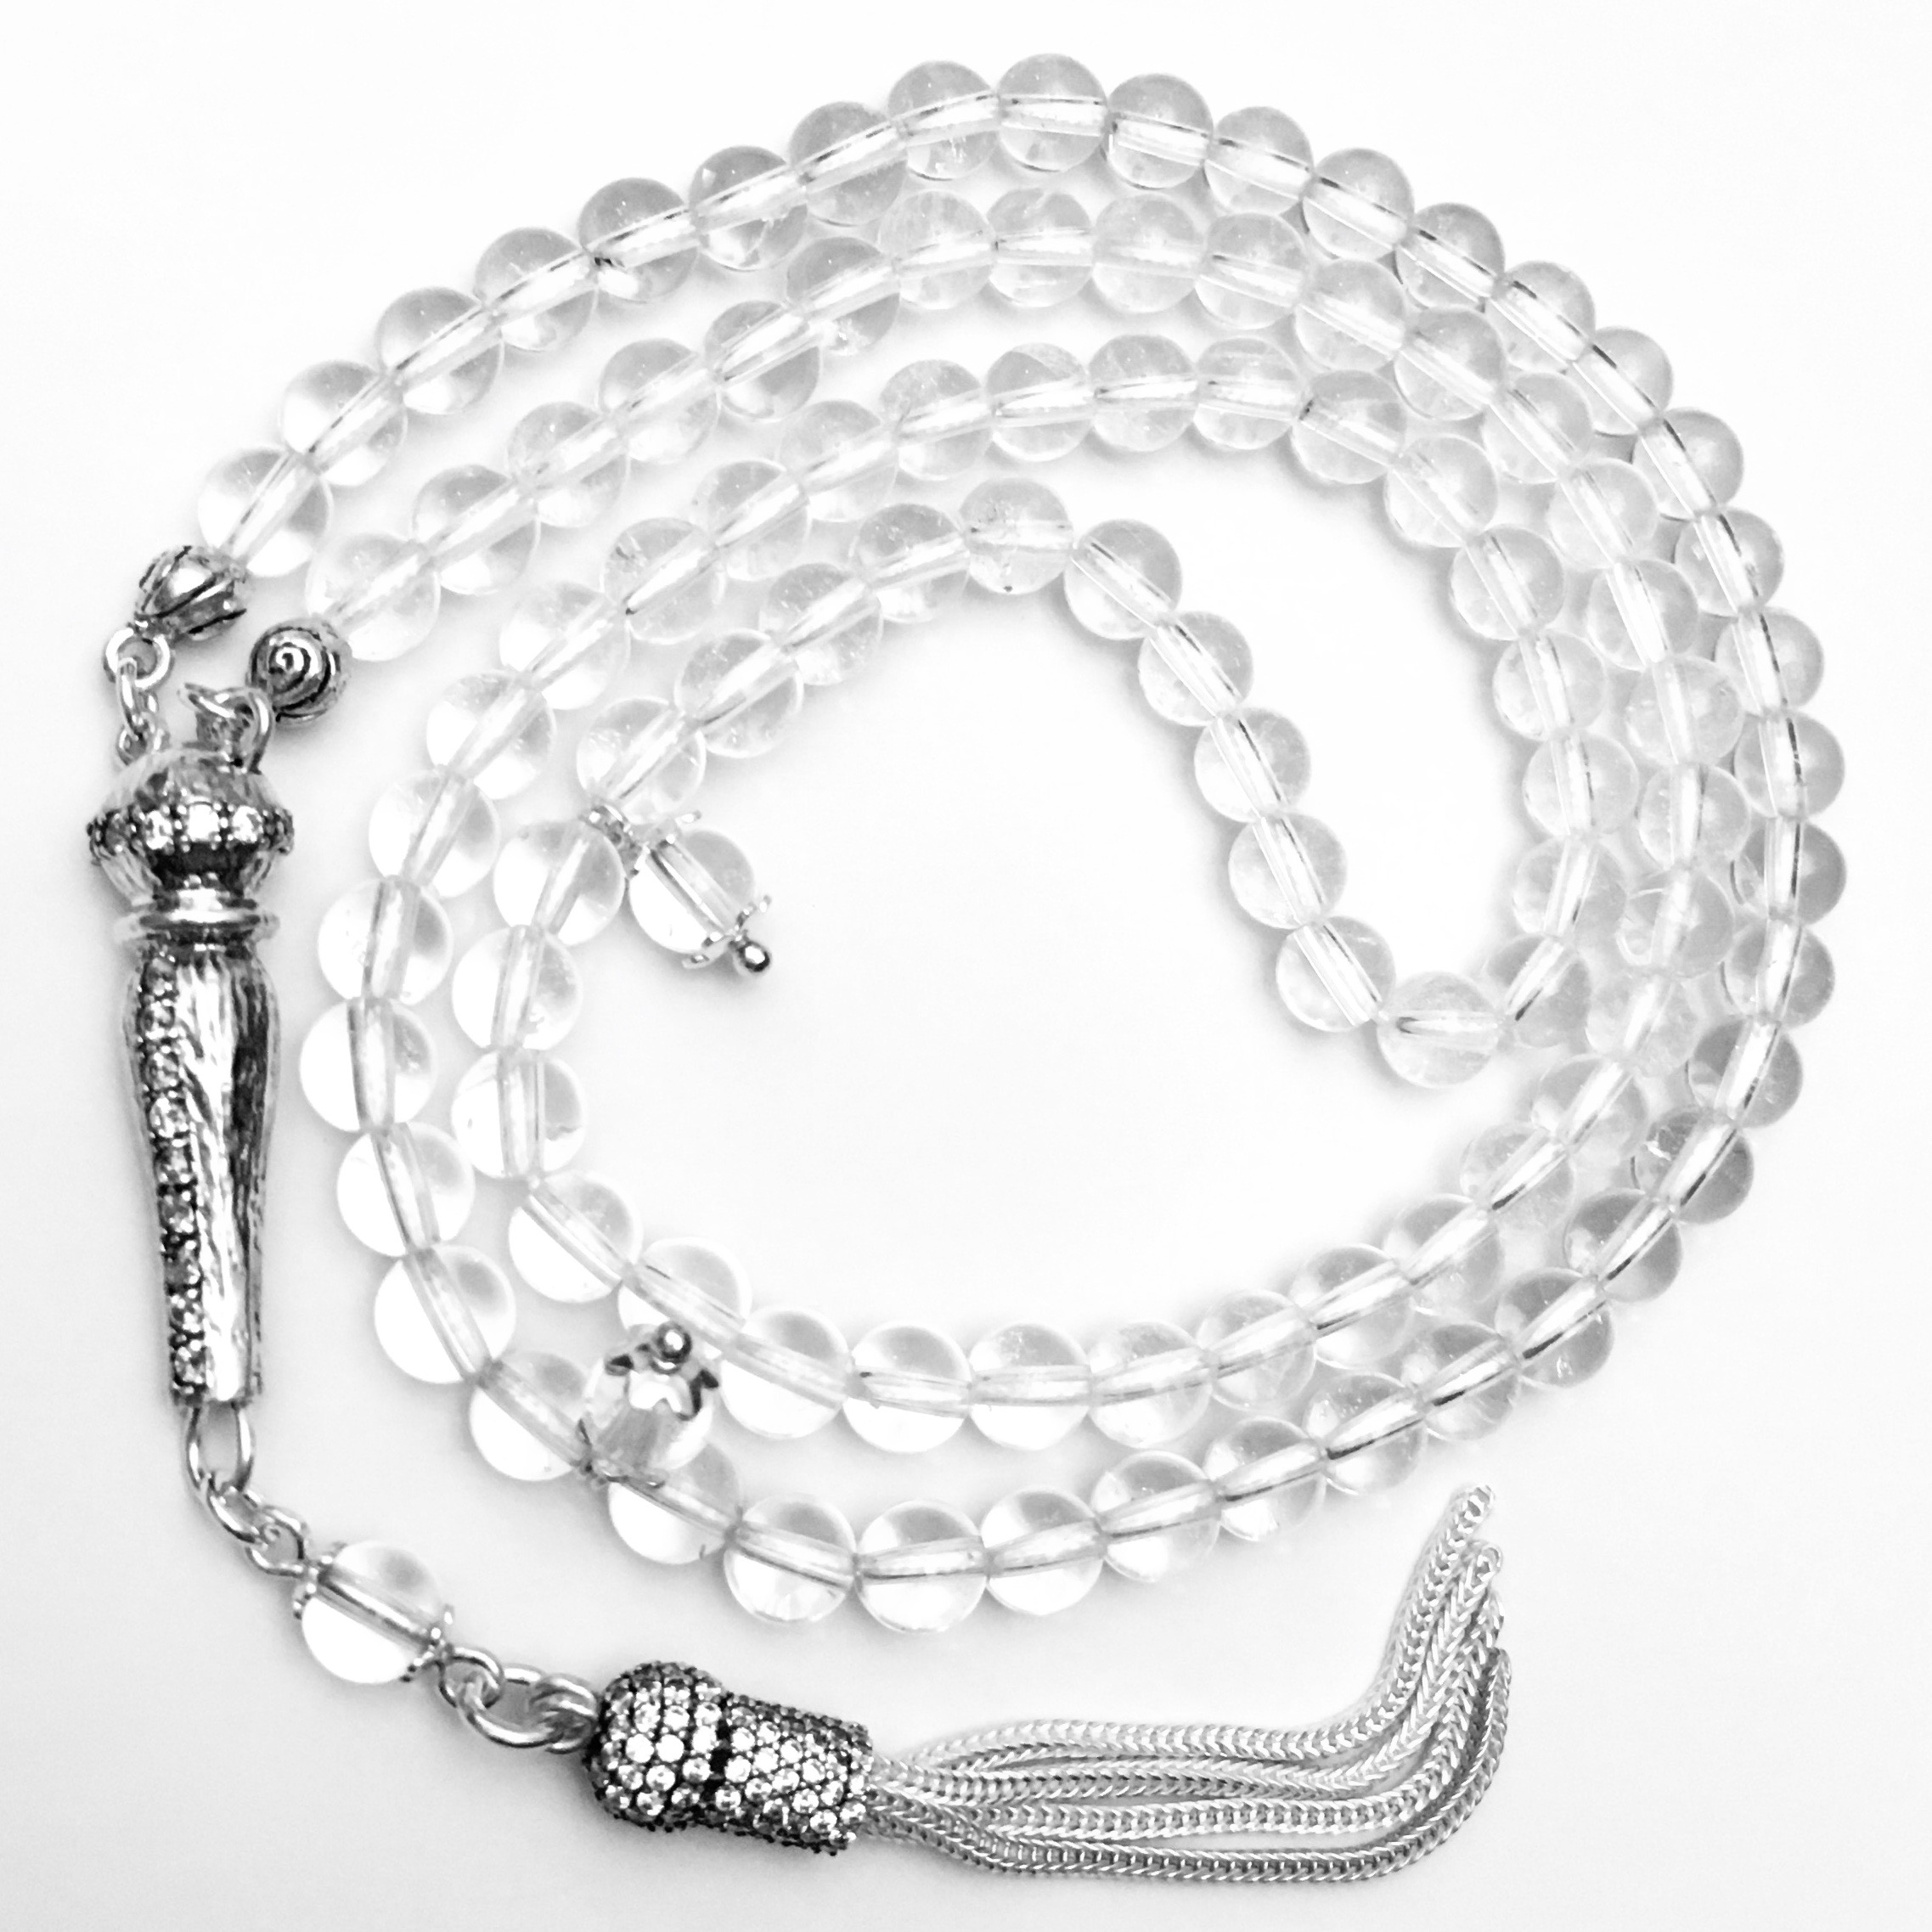 Najaf Quartz Islamic Prayer Beads Tasbih silver cubic zirconia